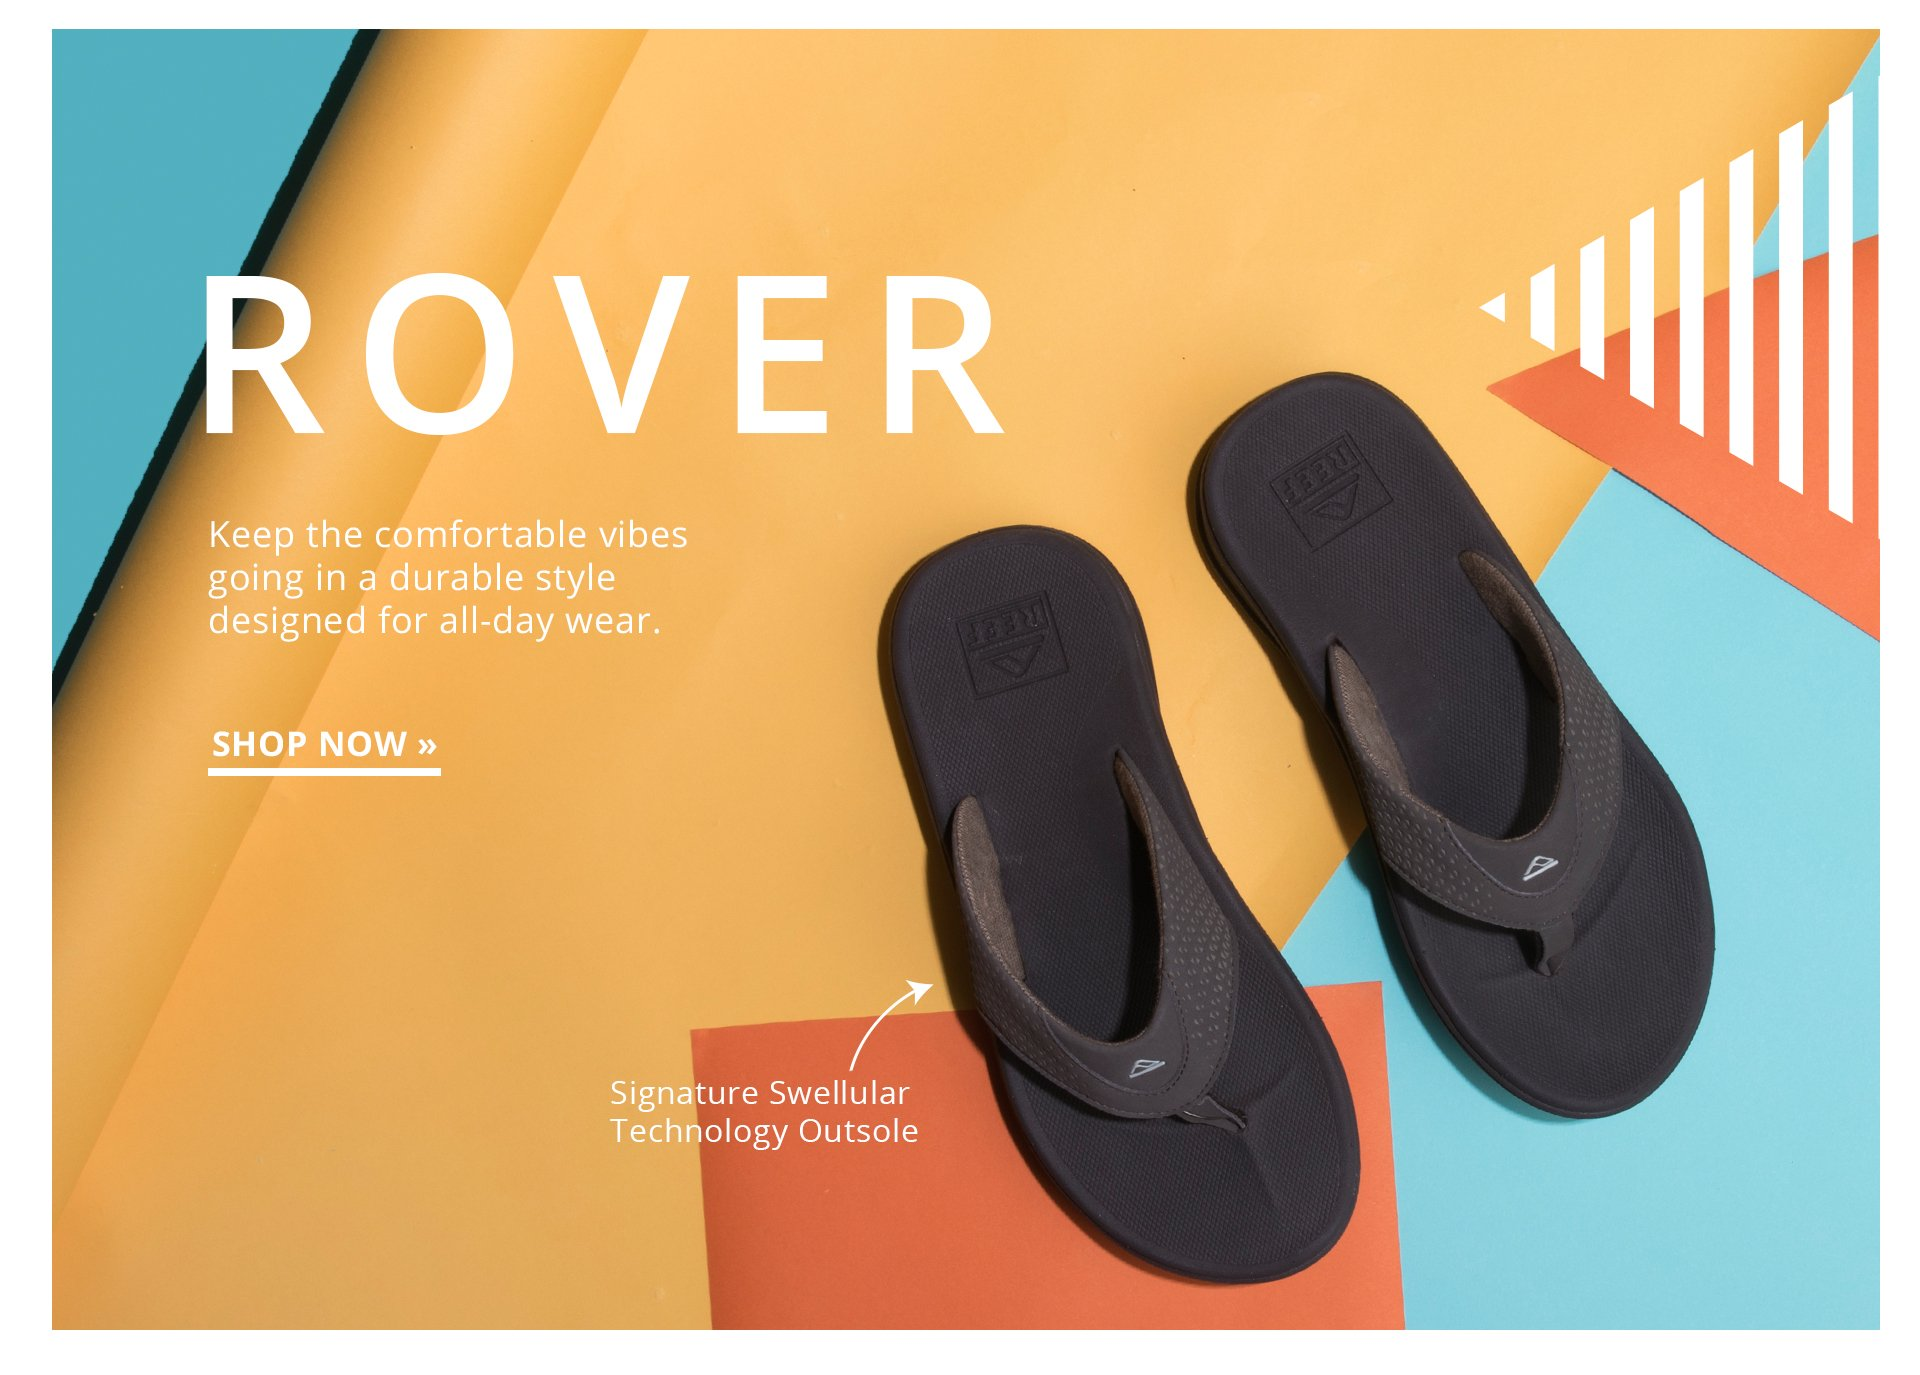 Rover. Keep the comfortable vibes going in a durable style designed for all-day wear. Shop Now.